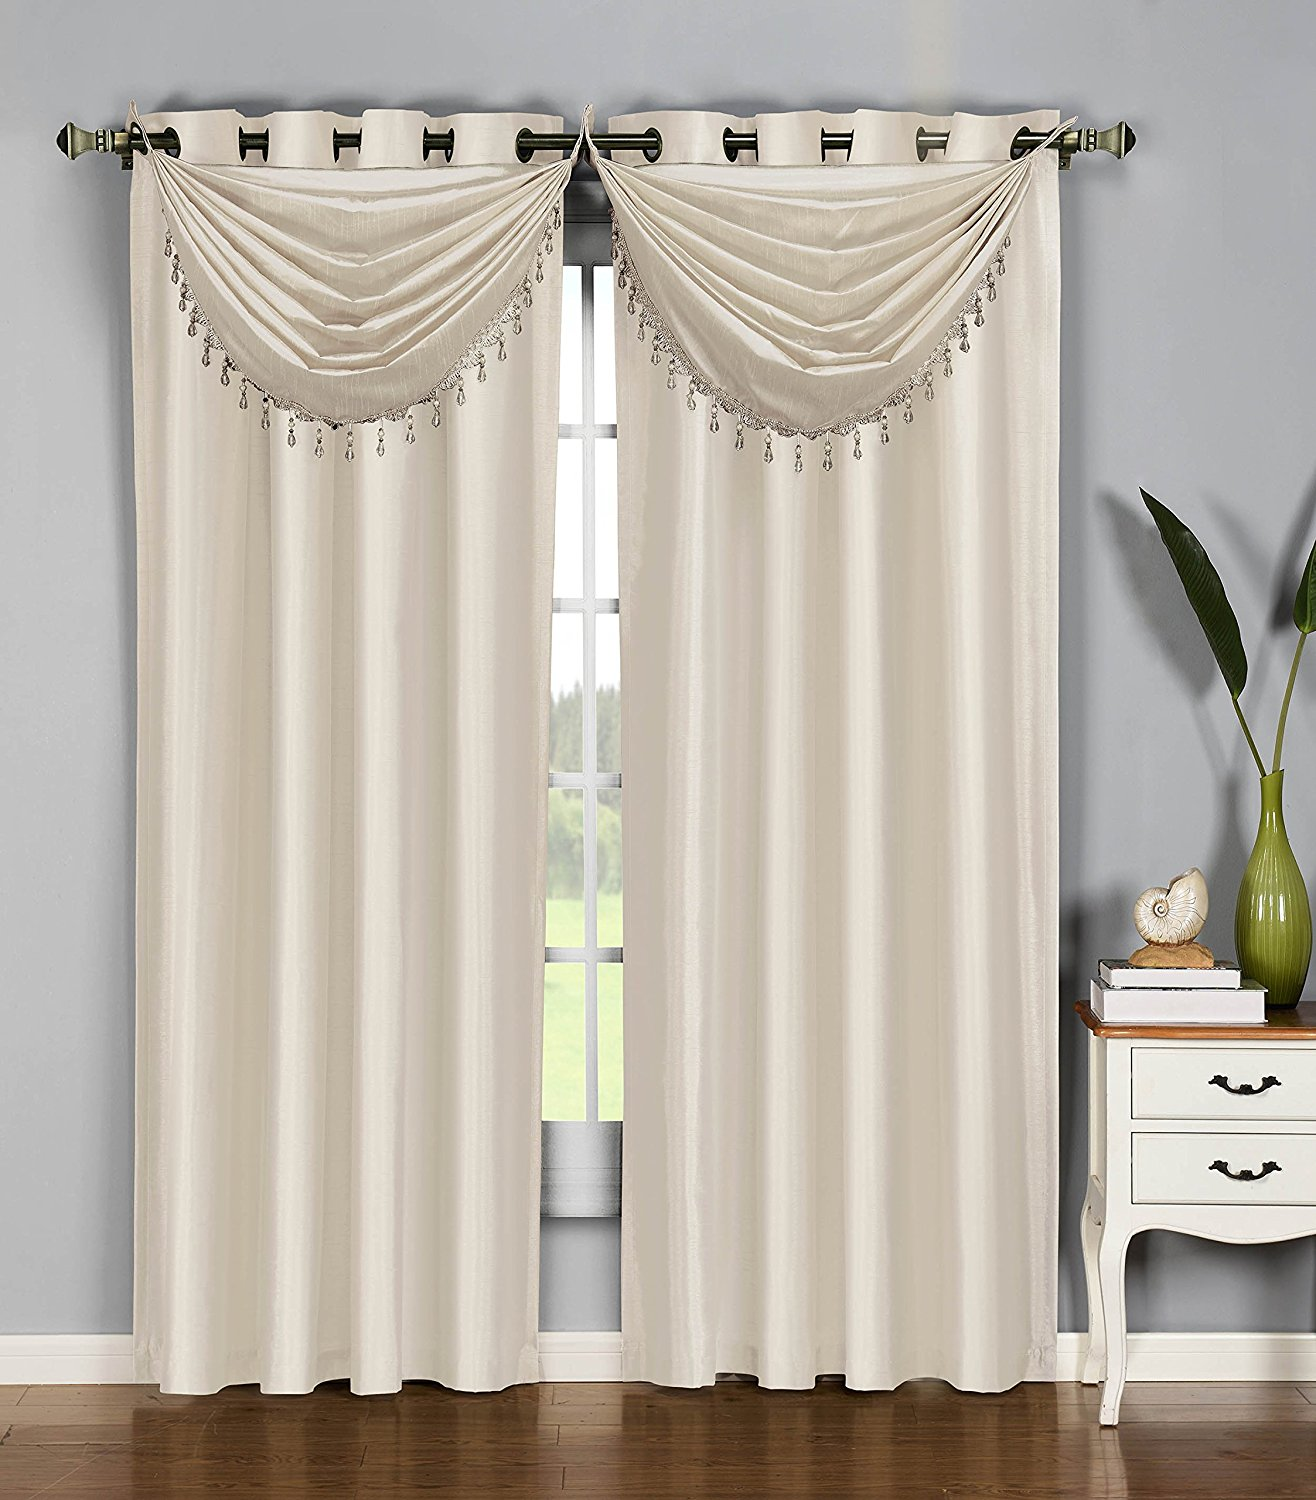 x v p toga treatment valance window beige swag golden grandeur